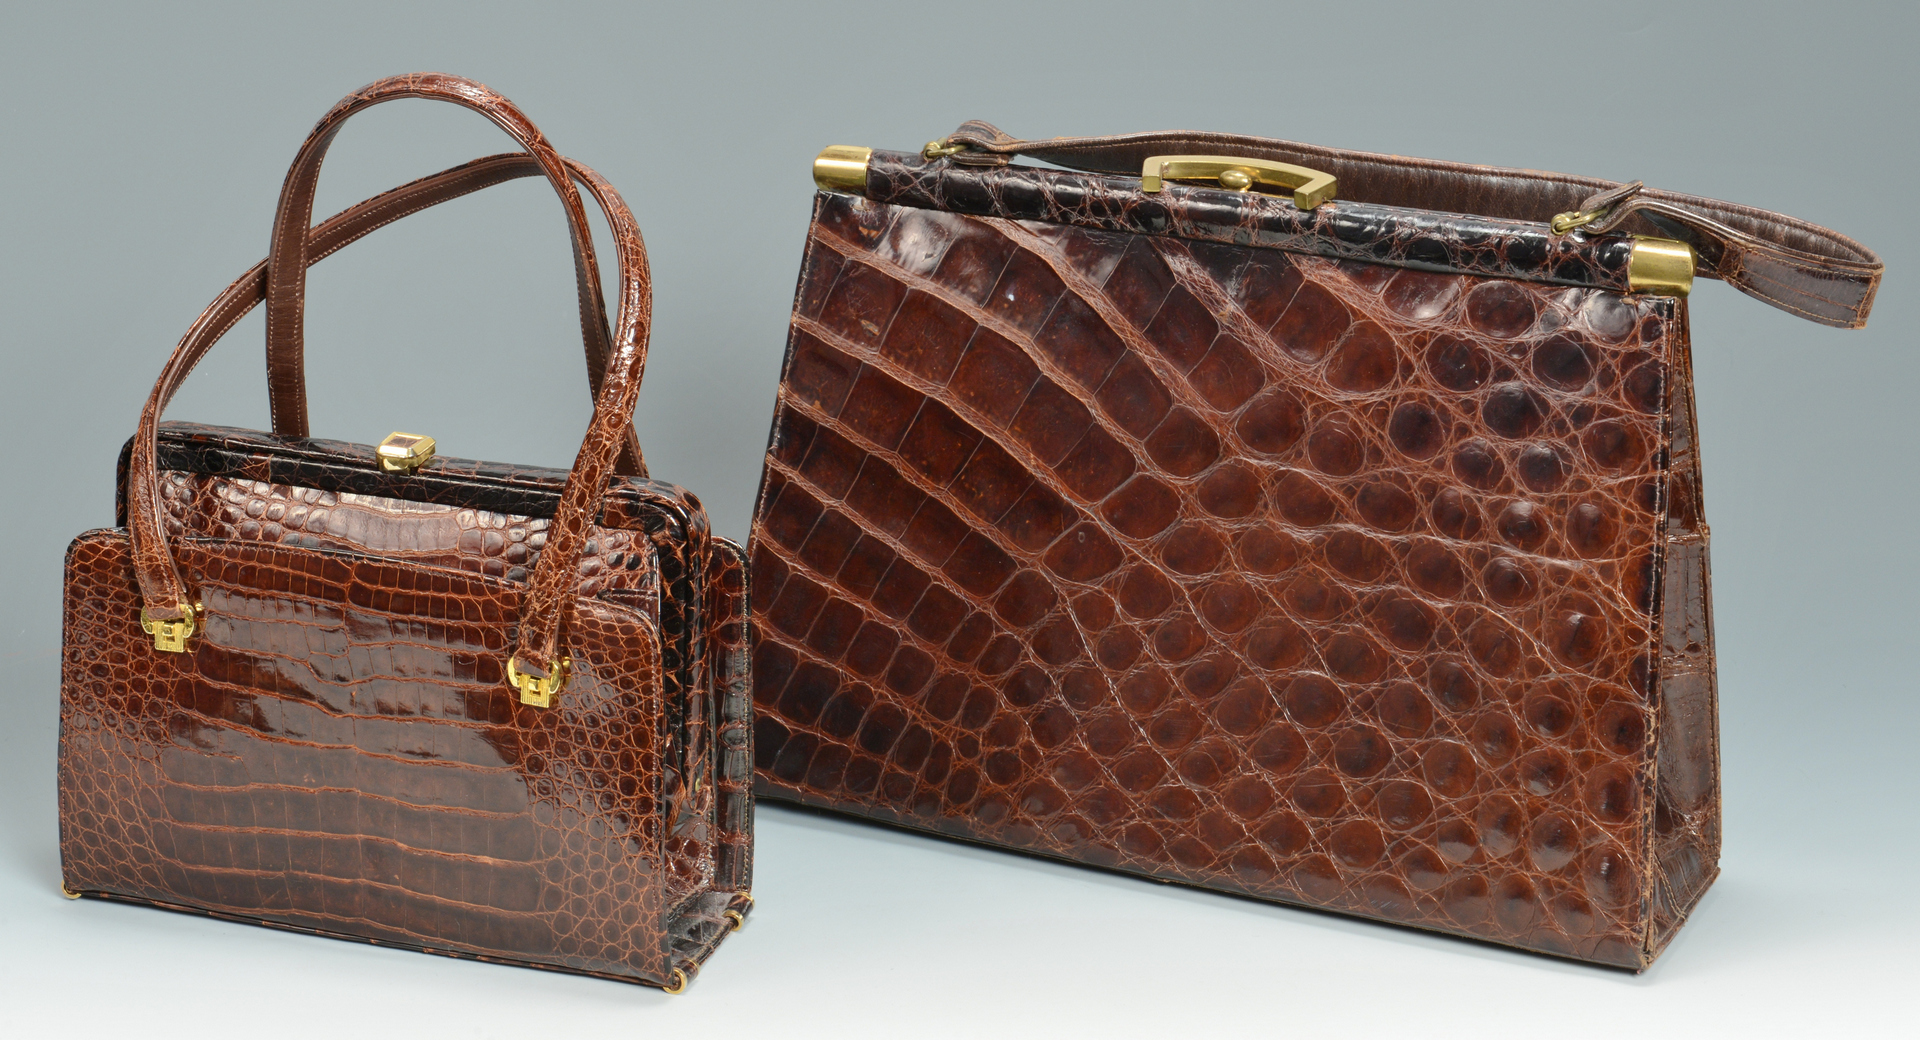 Lot 3088237: 3 Vintage Crocodile/Alligator Handbags plus other